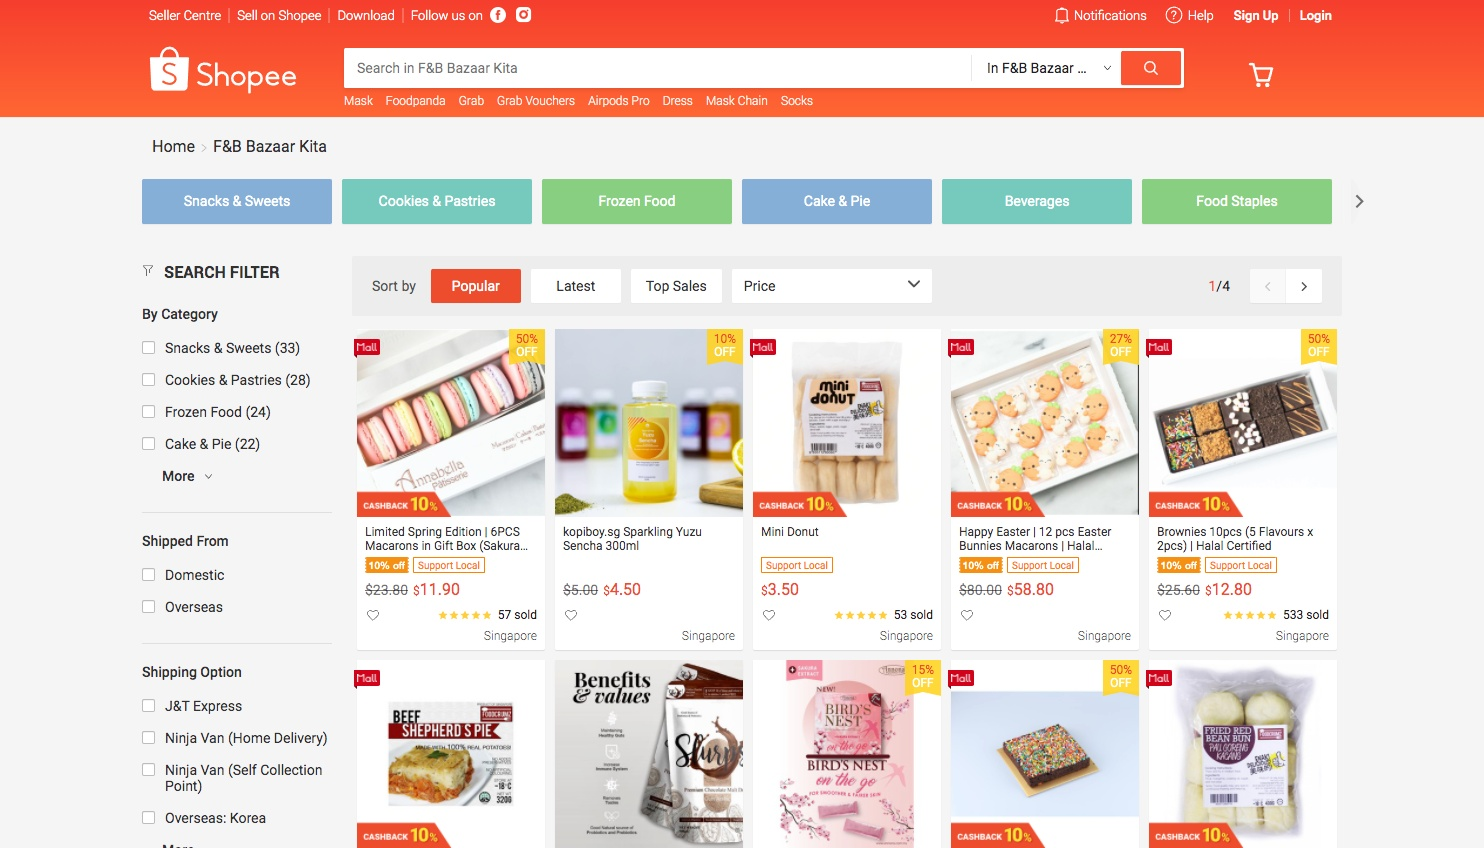 Click here to visit the microsite of sweet treats offered on Shopee.